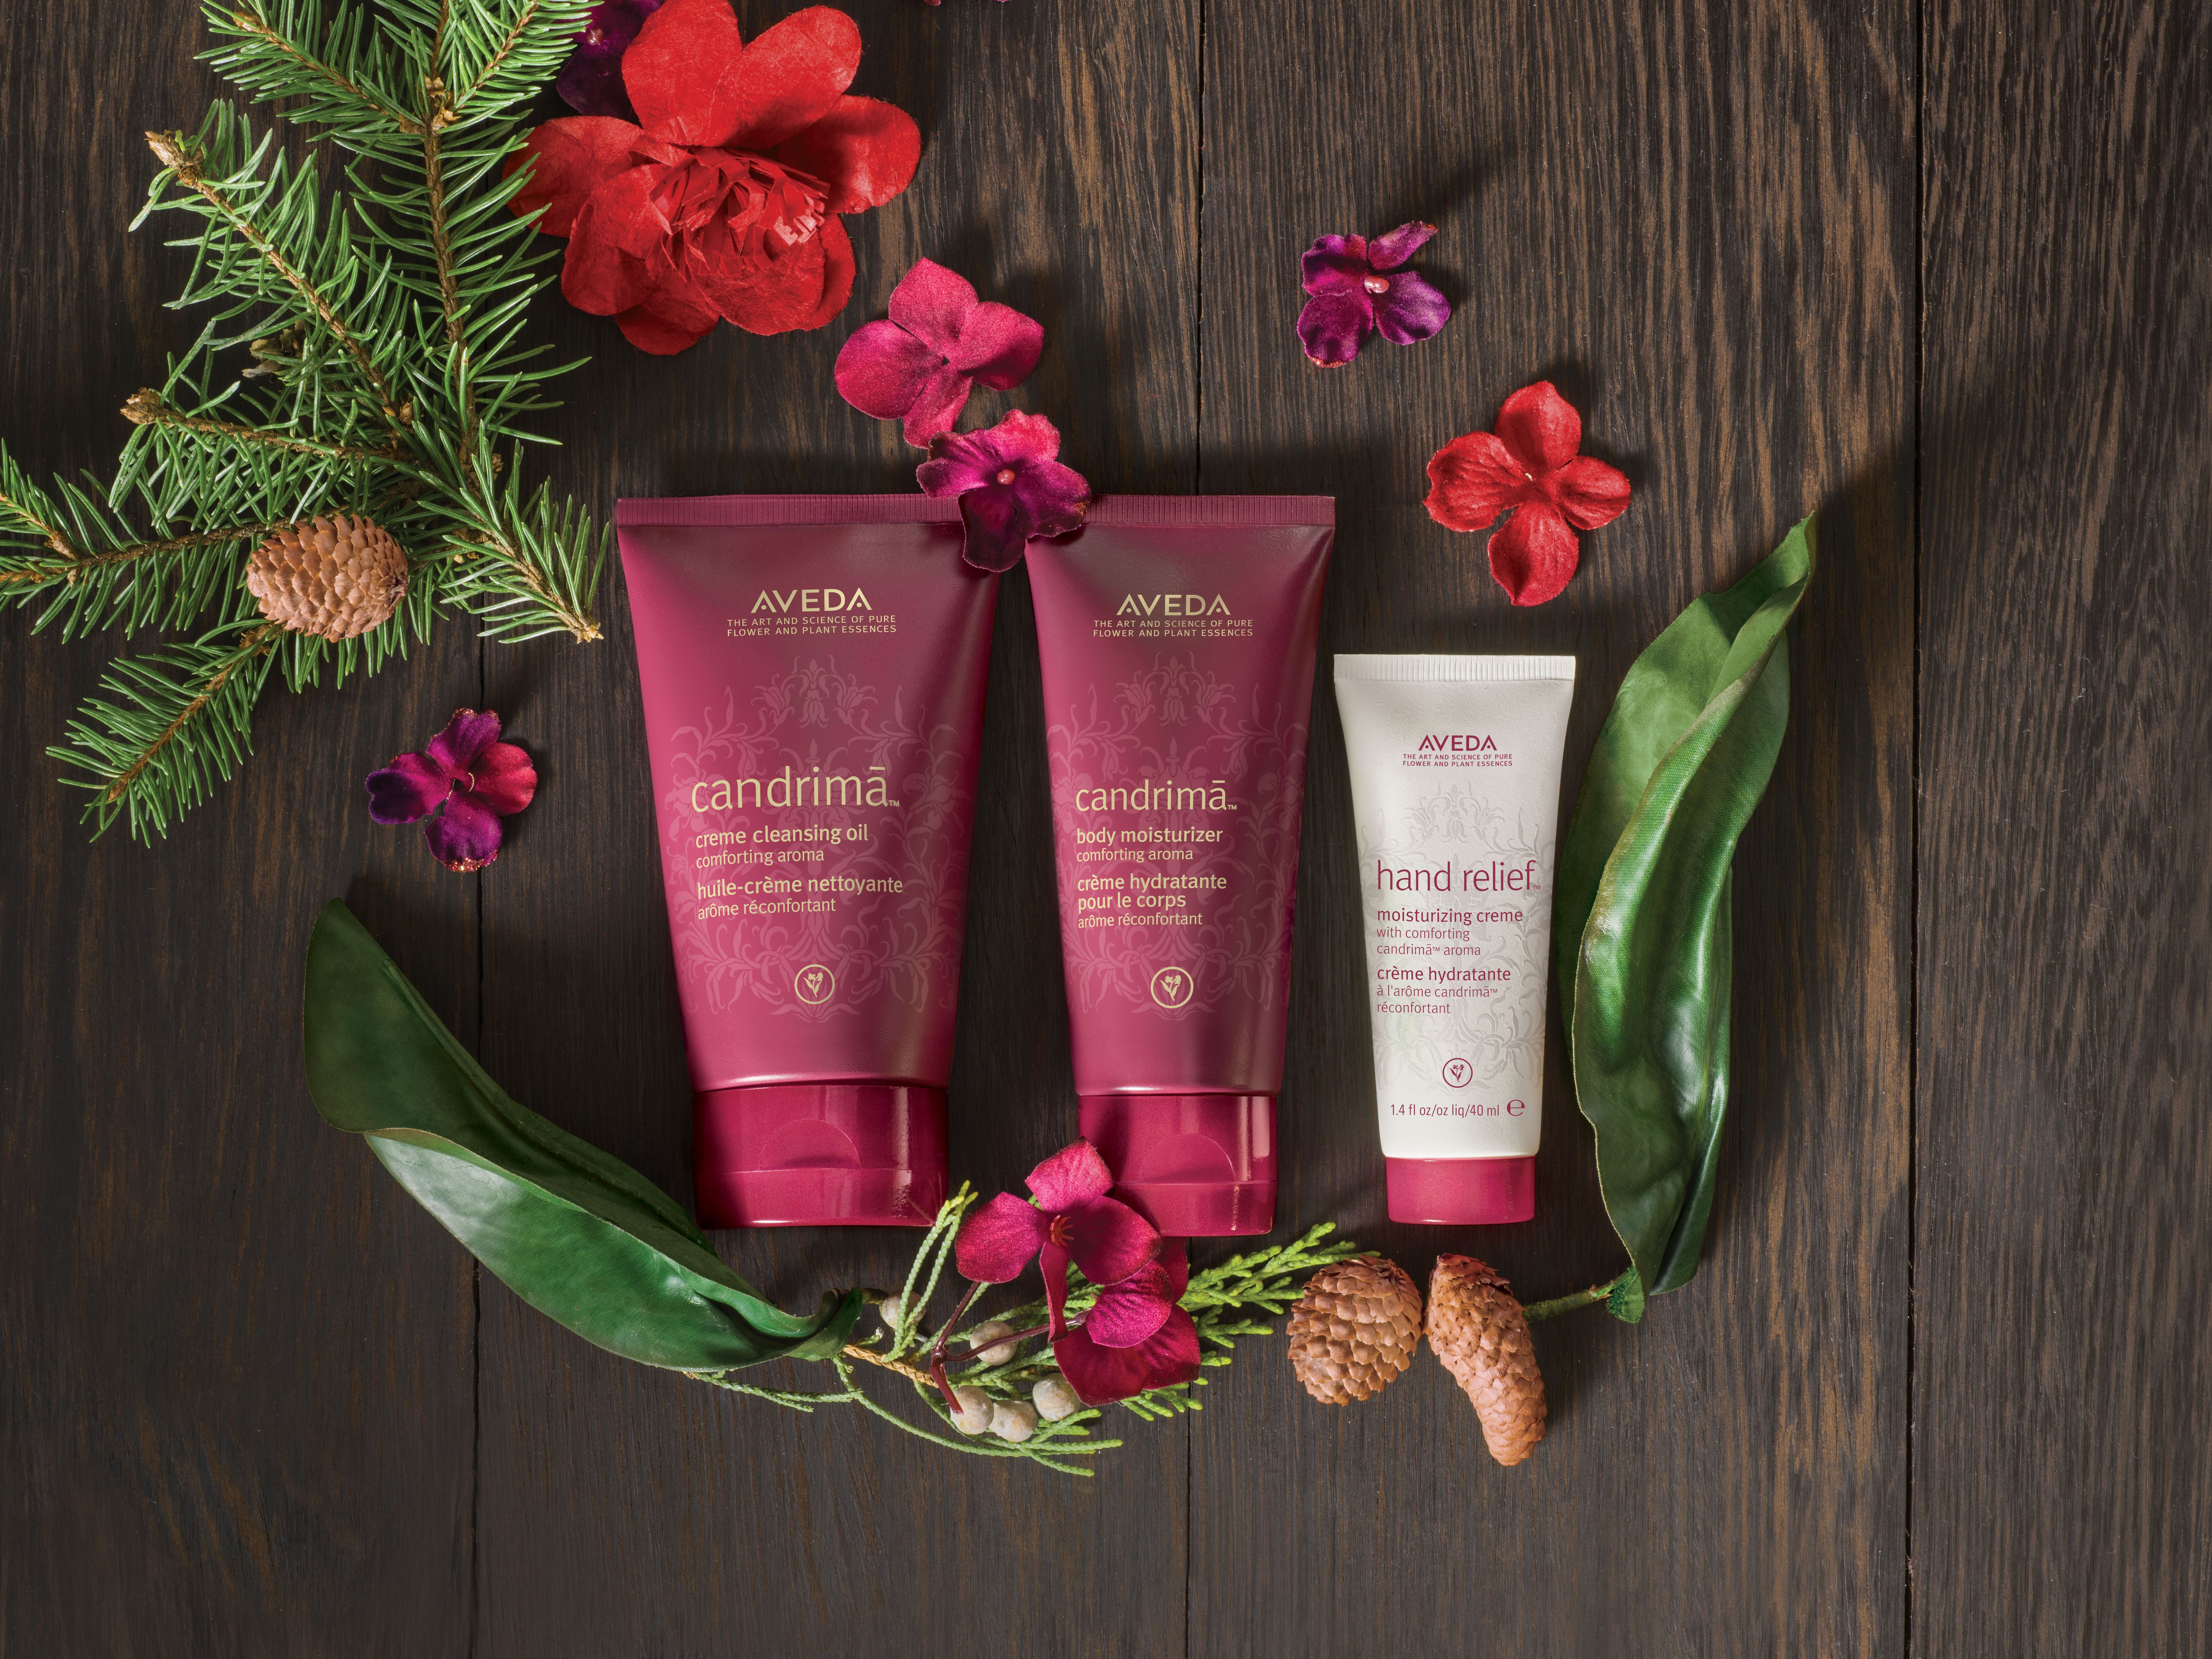 A Gift Of Pure Comfort Creme Cleansing Oil Body Moisturizer And Hand Relief Travel Size In New Candrima Aroma Holiday Aveda Gi Aveda Aveda Hair Aveda Gifts